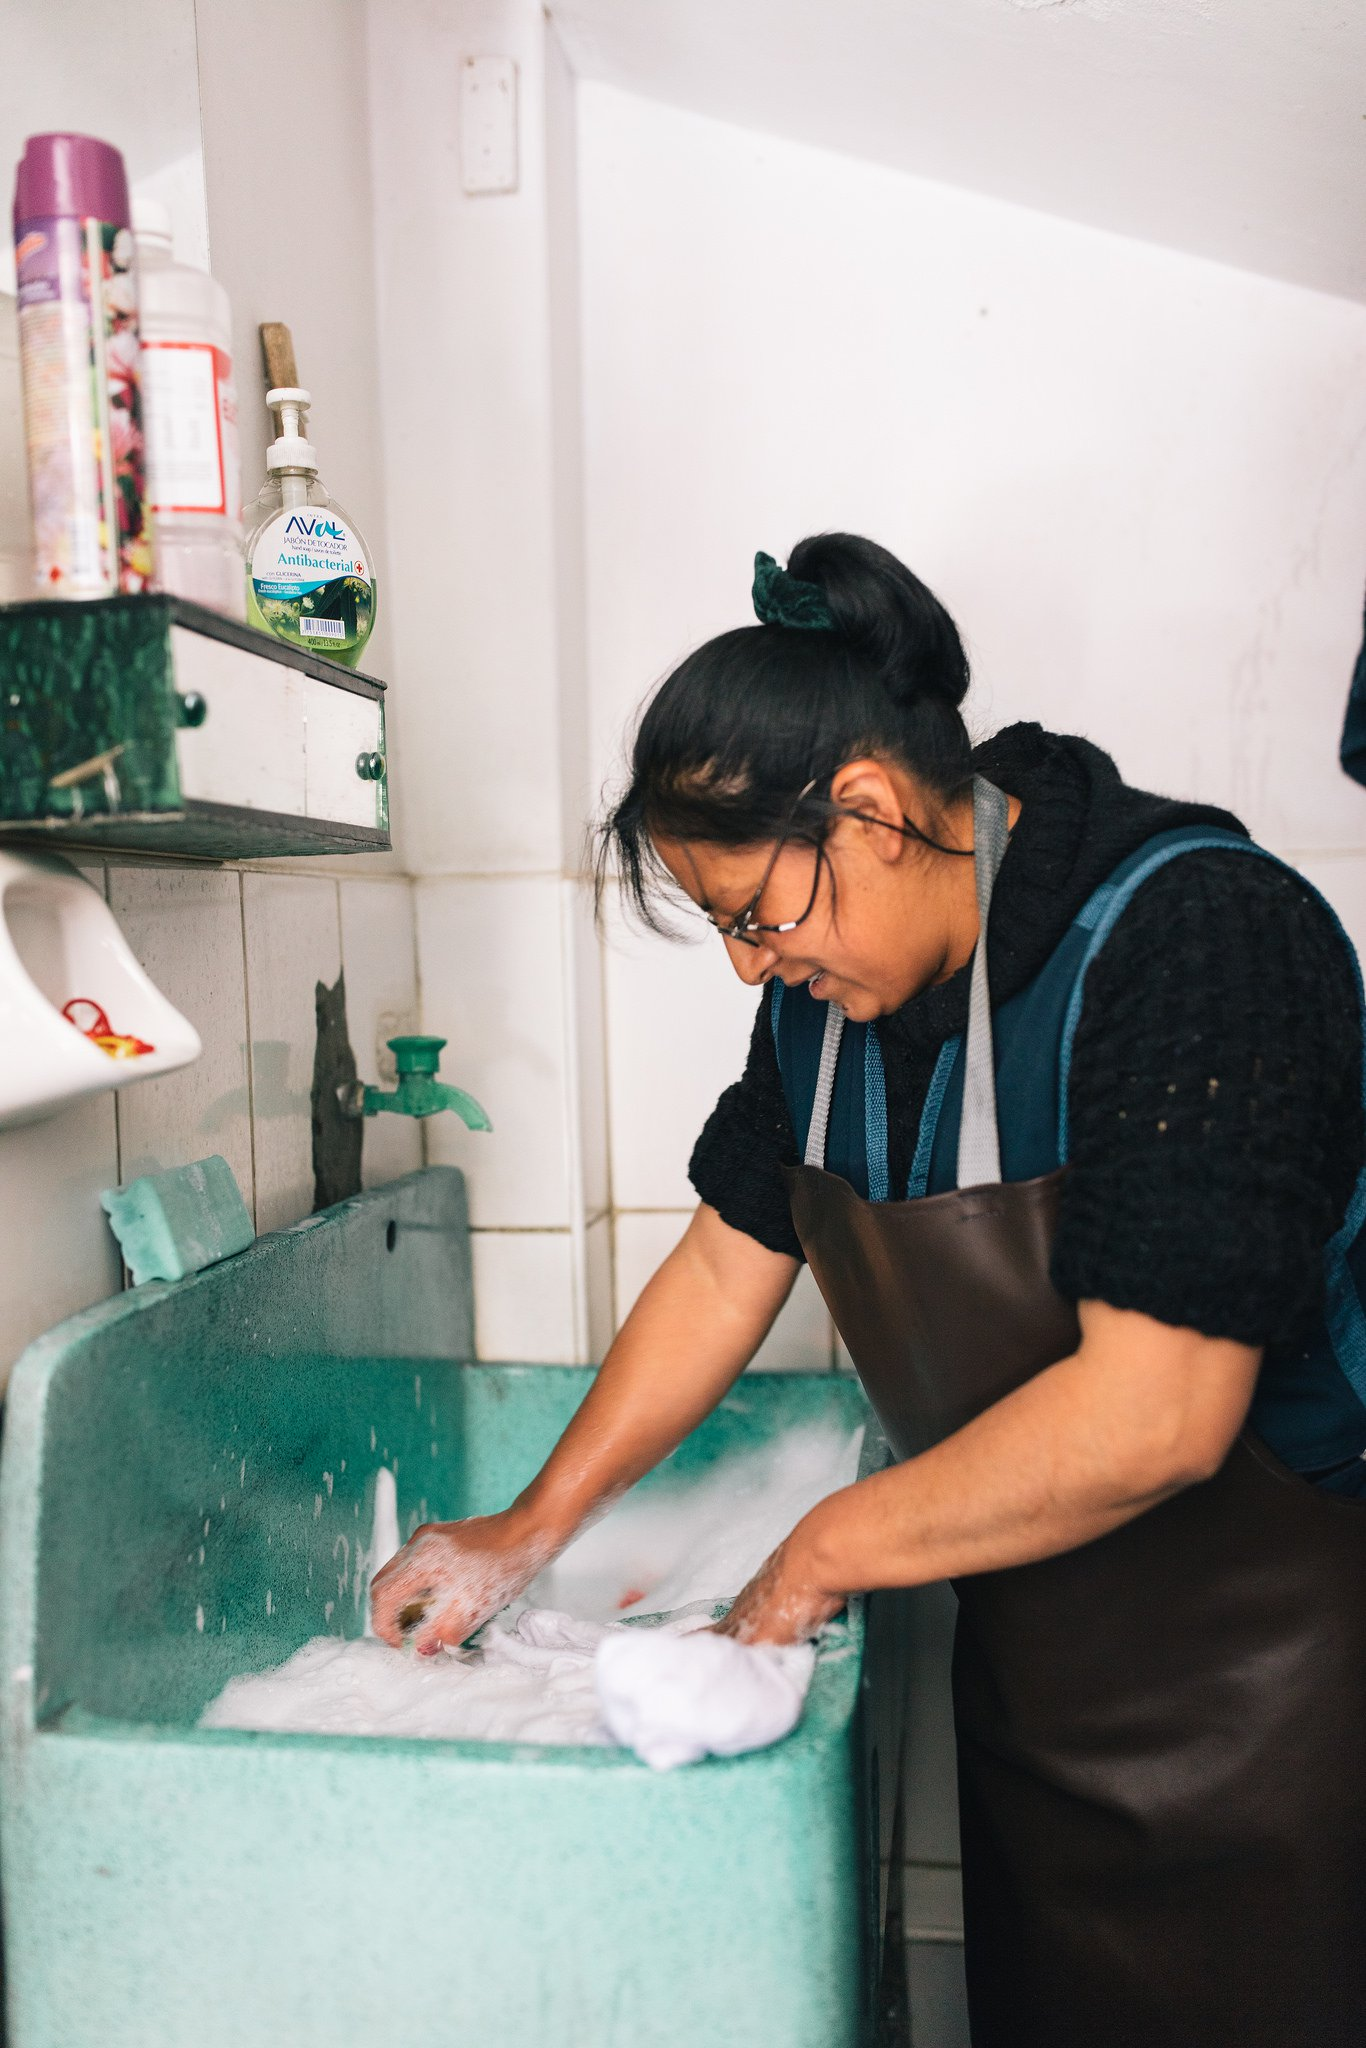 Jose's wife washes